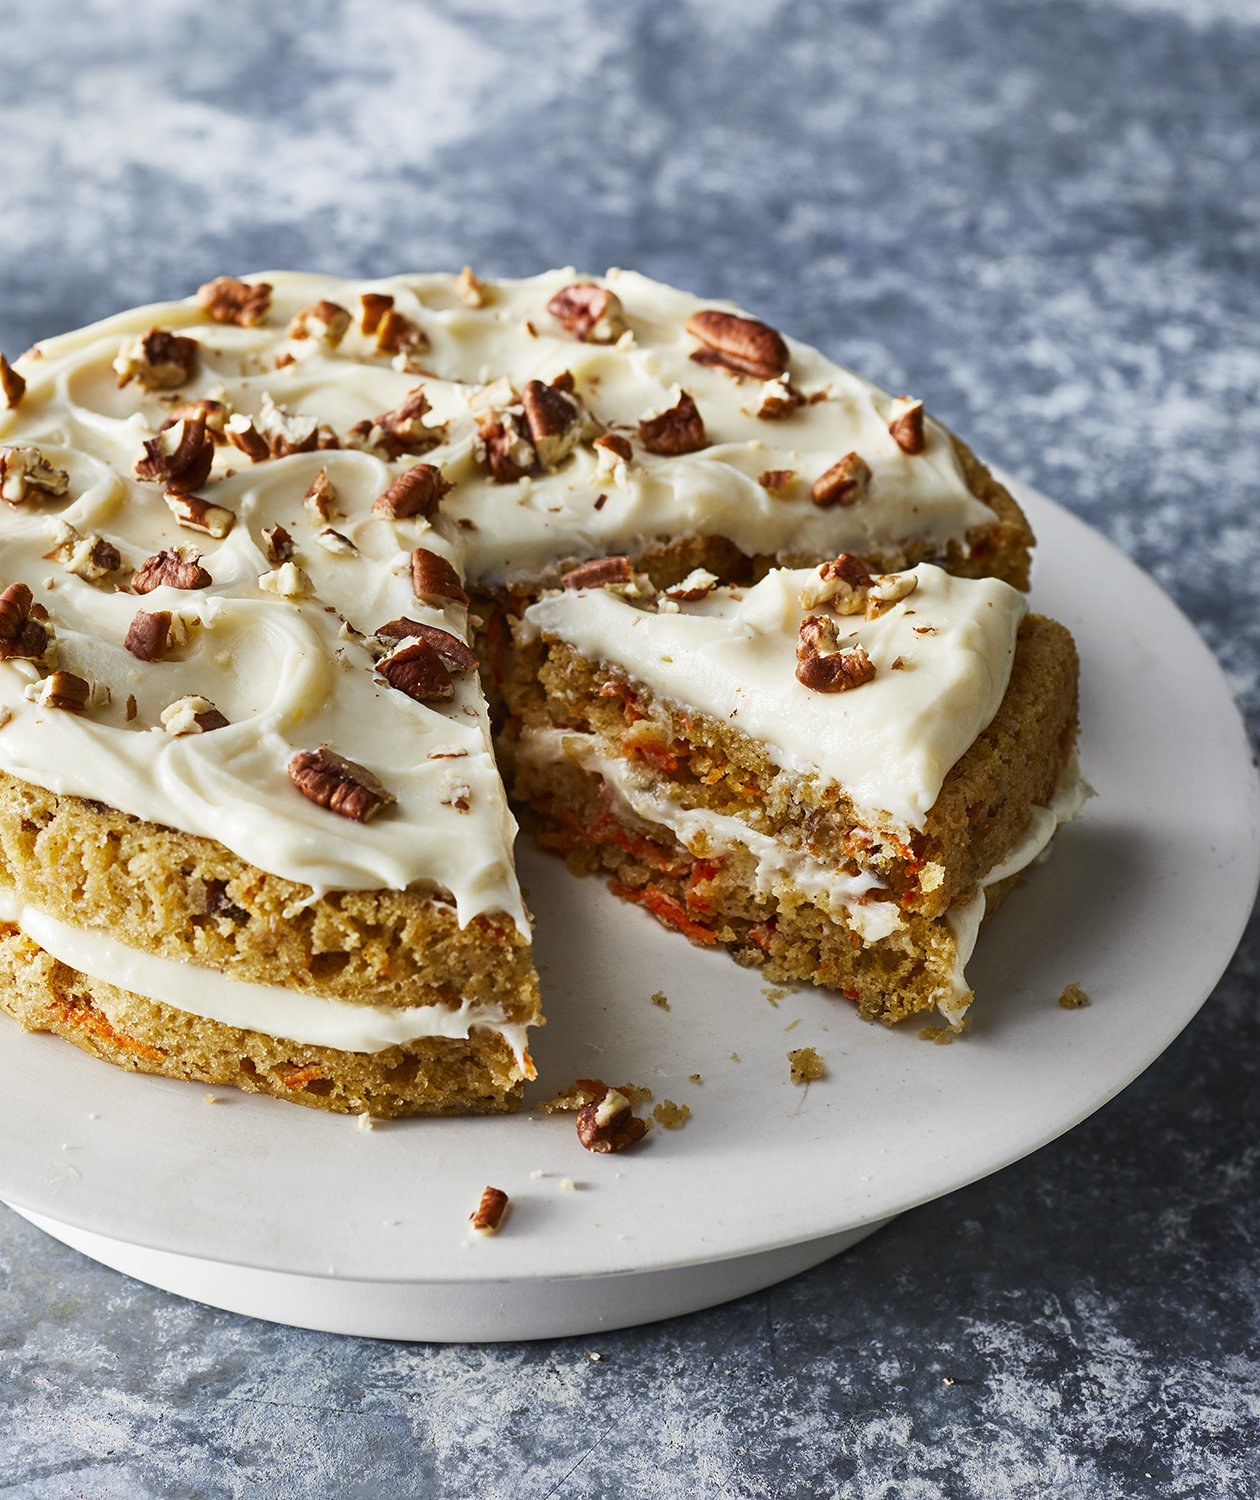 Slow-Cooker Carrot Cake With Cream Cheese Frosting